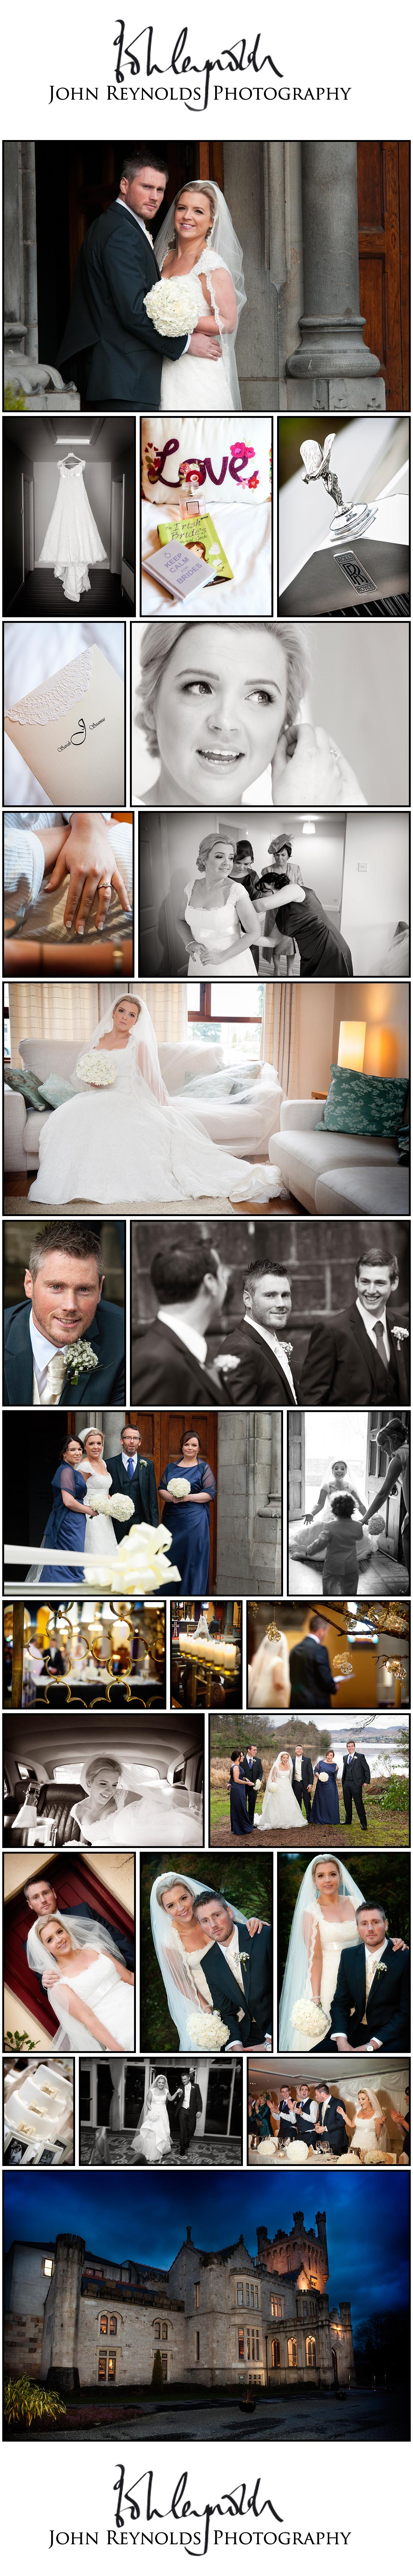 Blog Collage-Sarah & Seamus